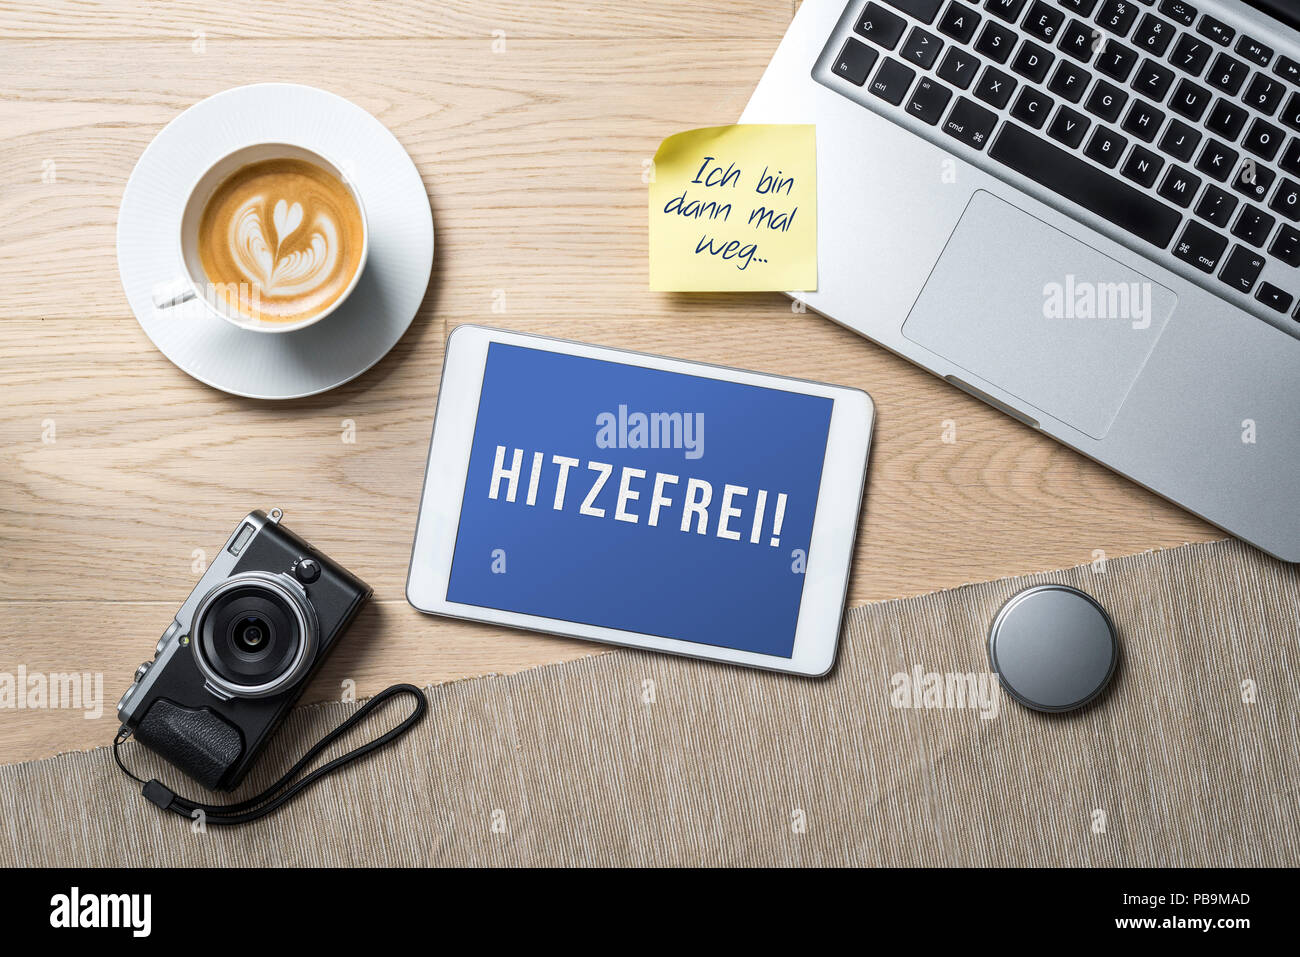 Hitzefrei written in german on tablet meaning having time off from work or school on account of excessively hot weather or heat wave and I'm gone on s - Stock Image